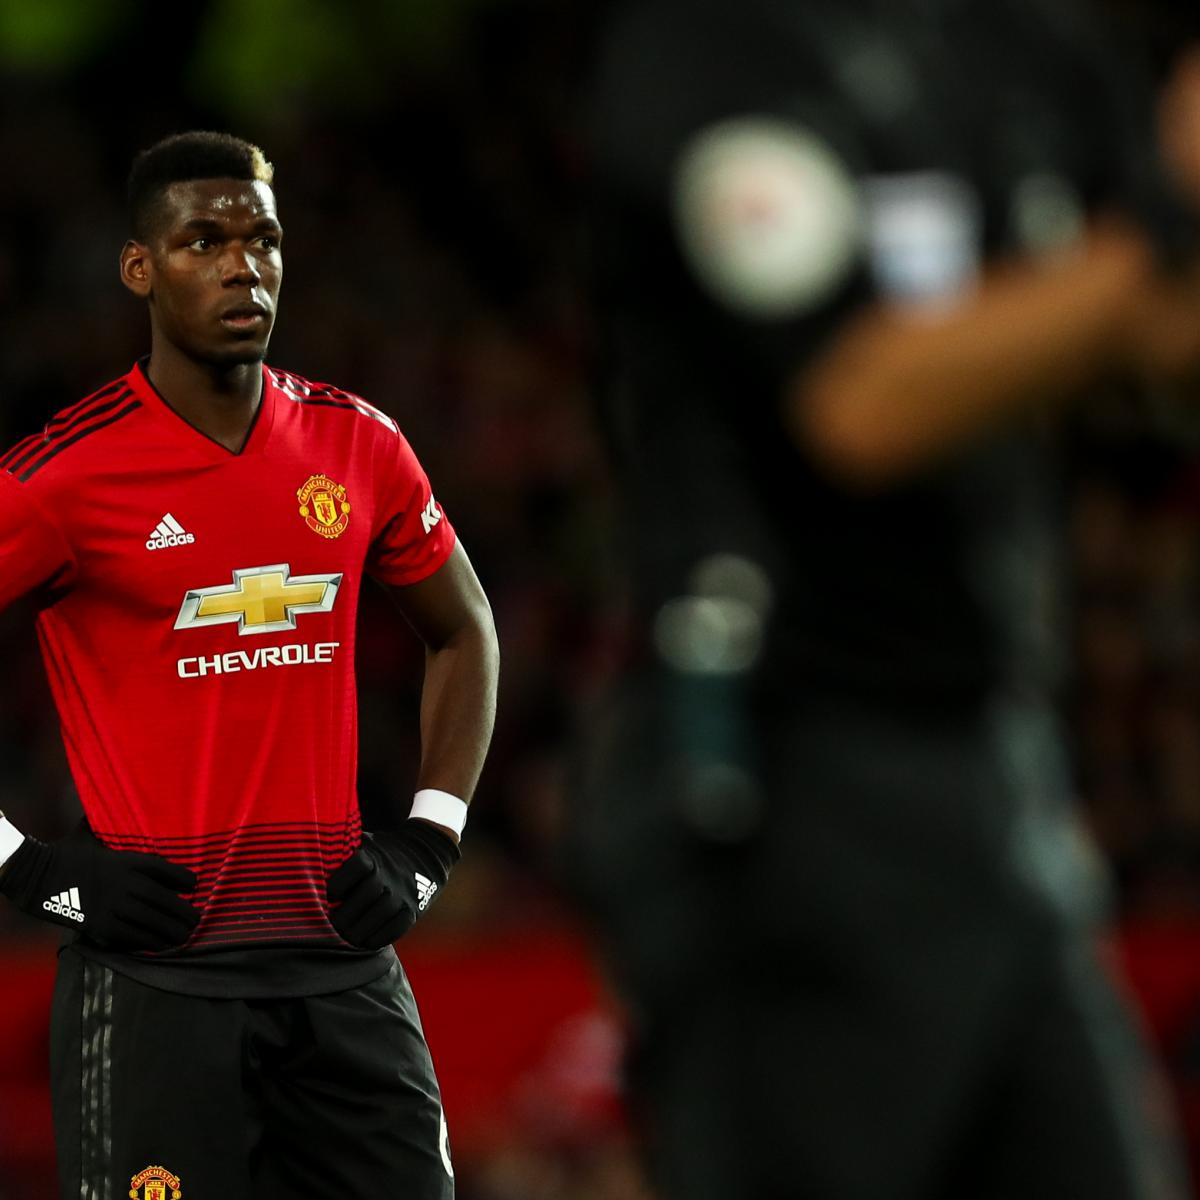 Paul Pogba Says 'It's Hard to Concentrate' After 2018 World Cup Win